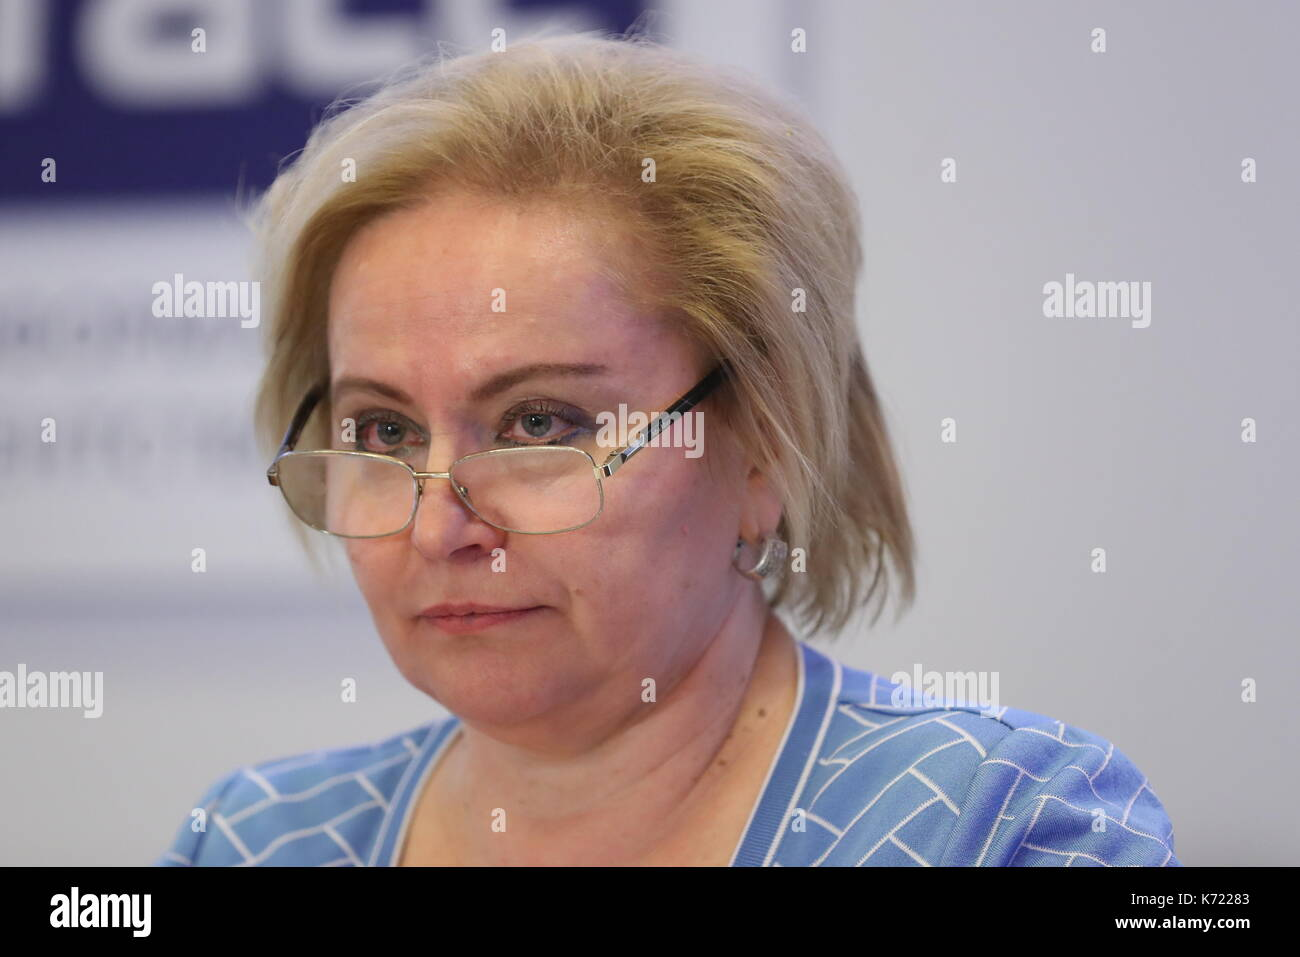 Moscow, Russia. 14th Sep, 2017. Lyubov Dukhanina, head of the Department of Pedagogy and Methodology of Scientific Education at the MEPhi National Research Nuclear University at a meeting of the Organising Committee for the Centenary of the 1917 Russian Revolution. Credit: Valery Sharifulin/TASS/Alamy Live News - Stock Image